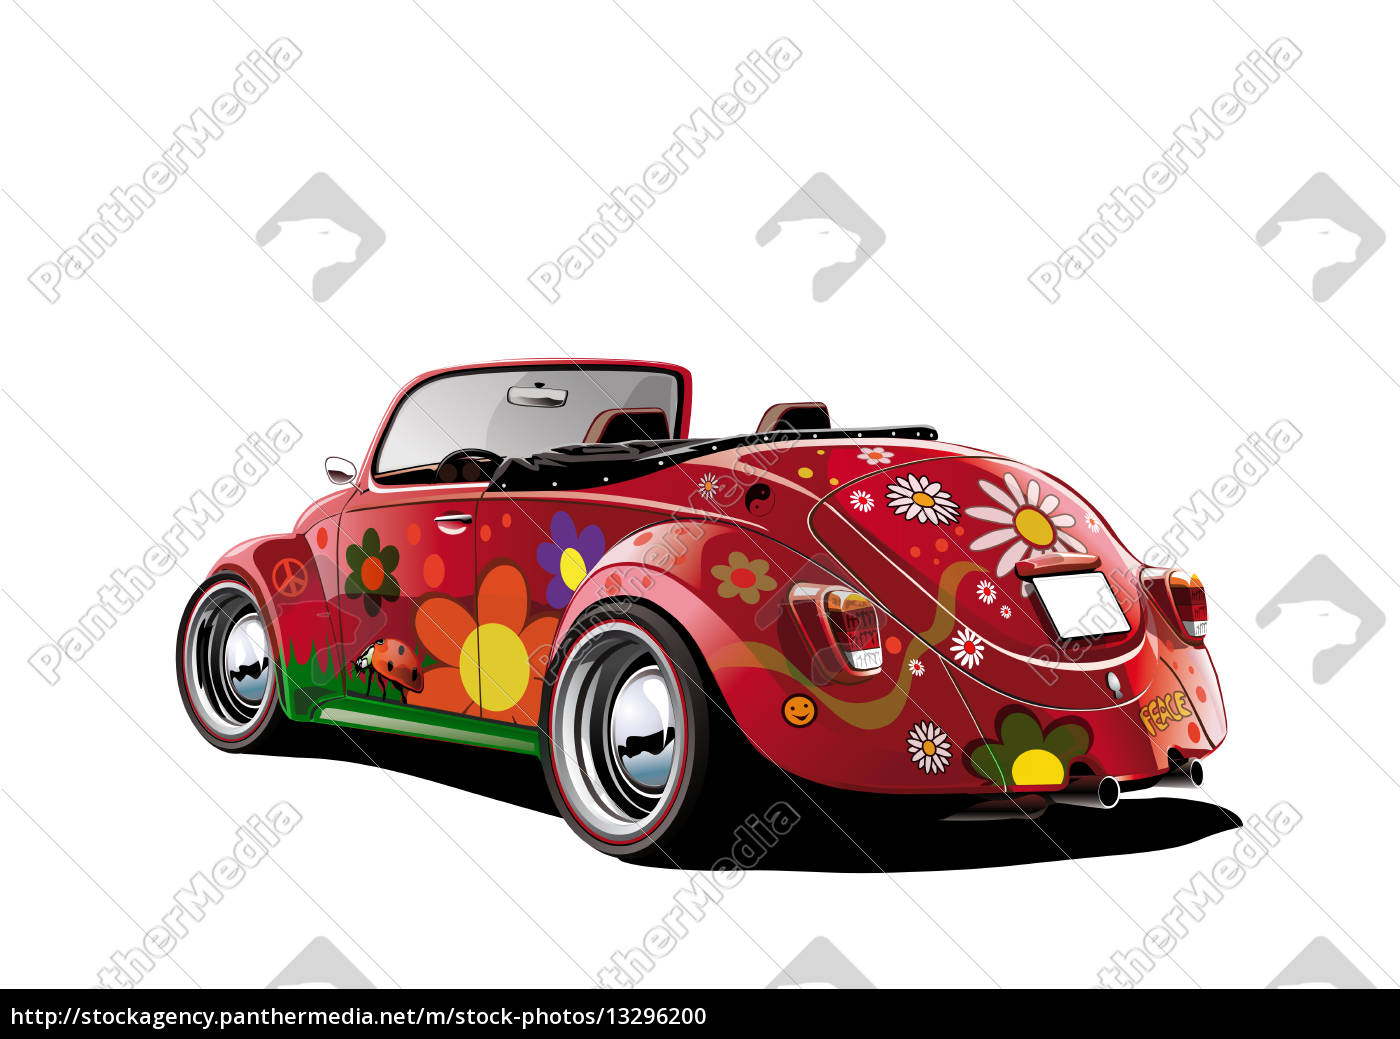 hippie-beetle-cabrio-white - 13296200